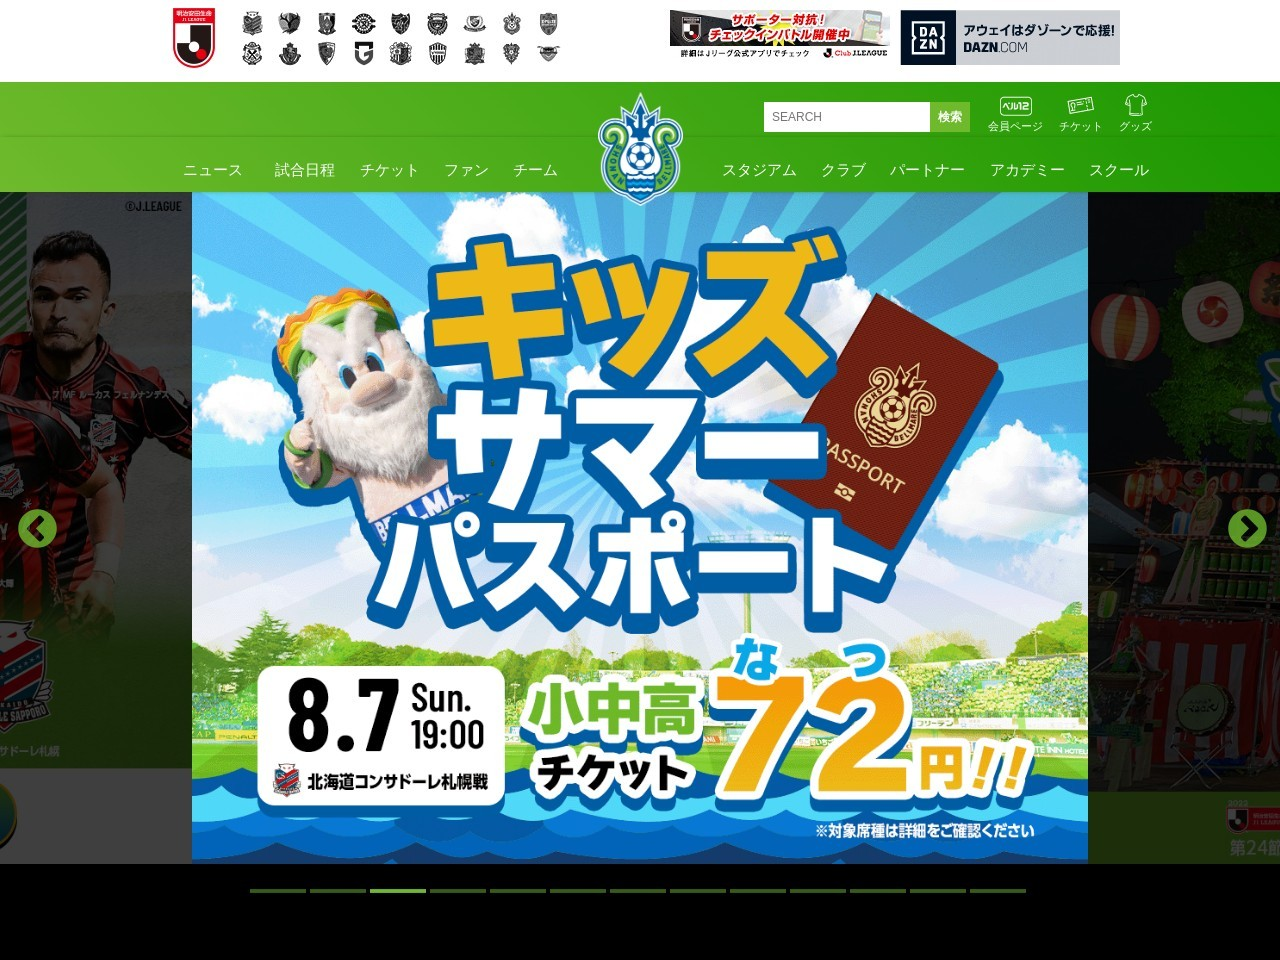 http://www.bellmare.co.jp/193359